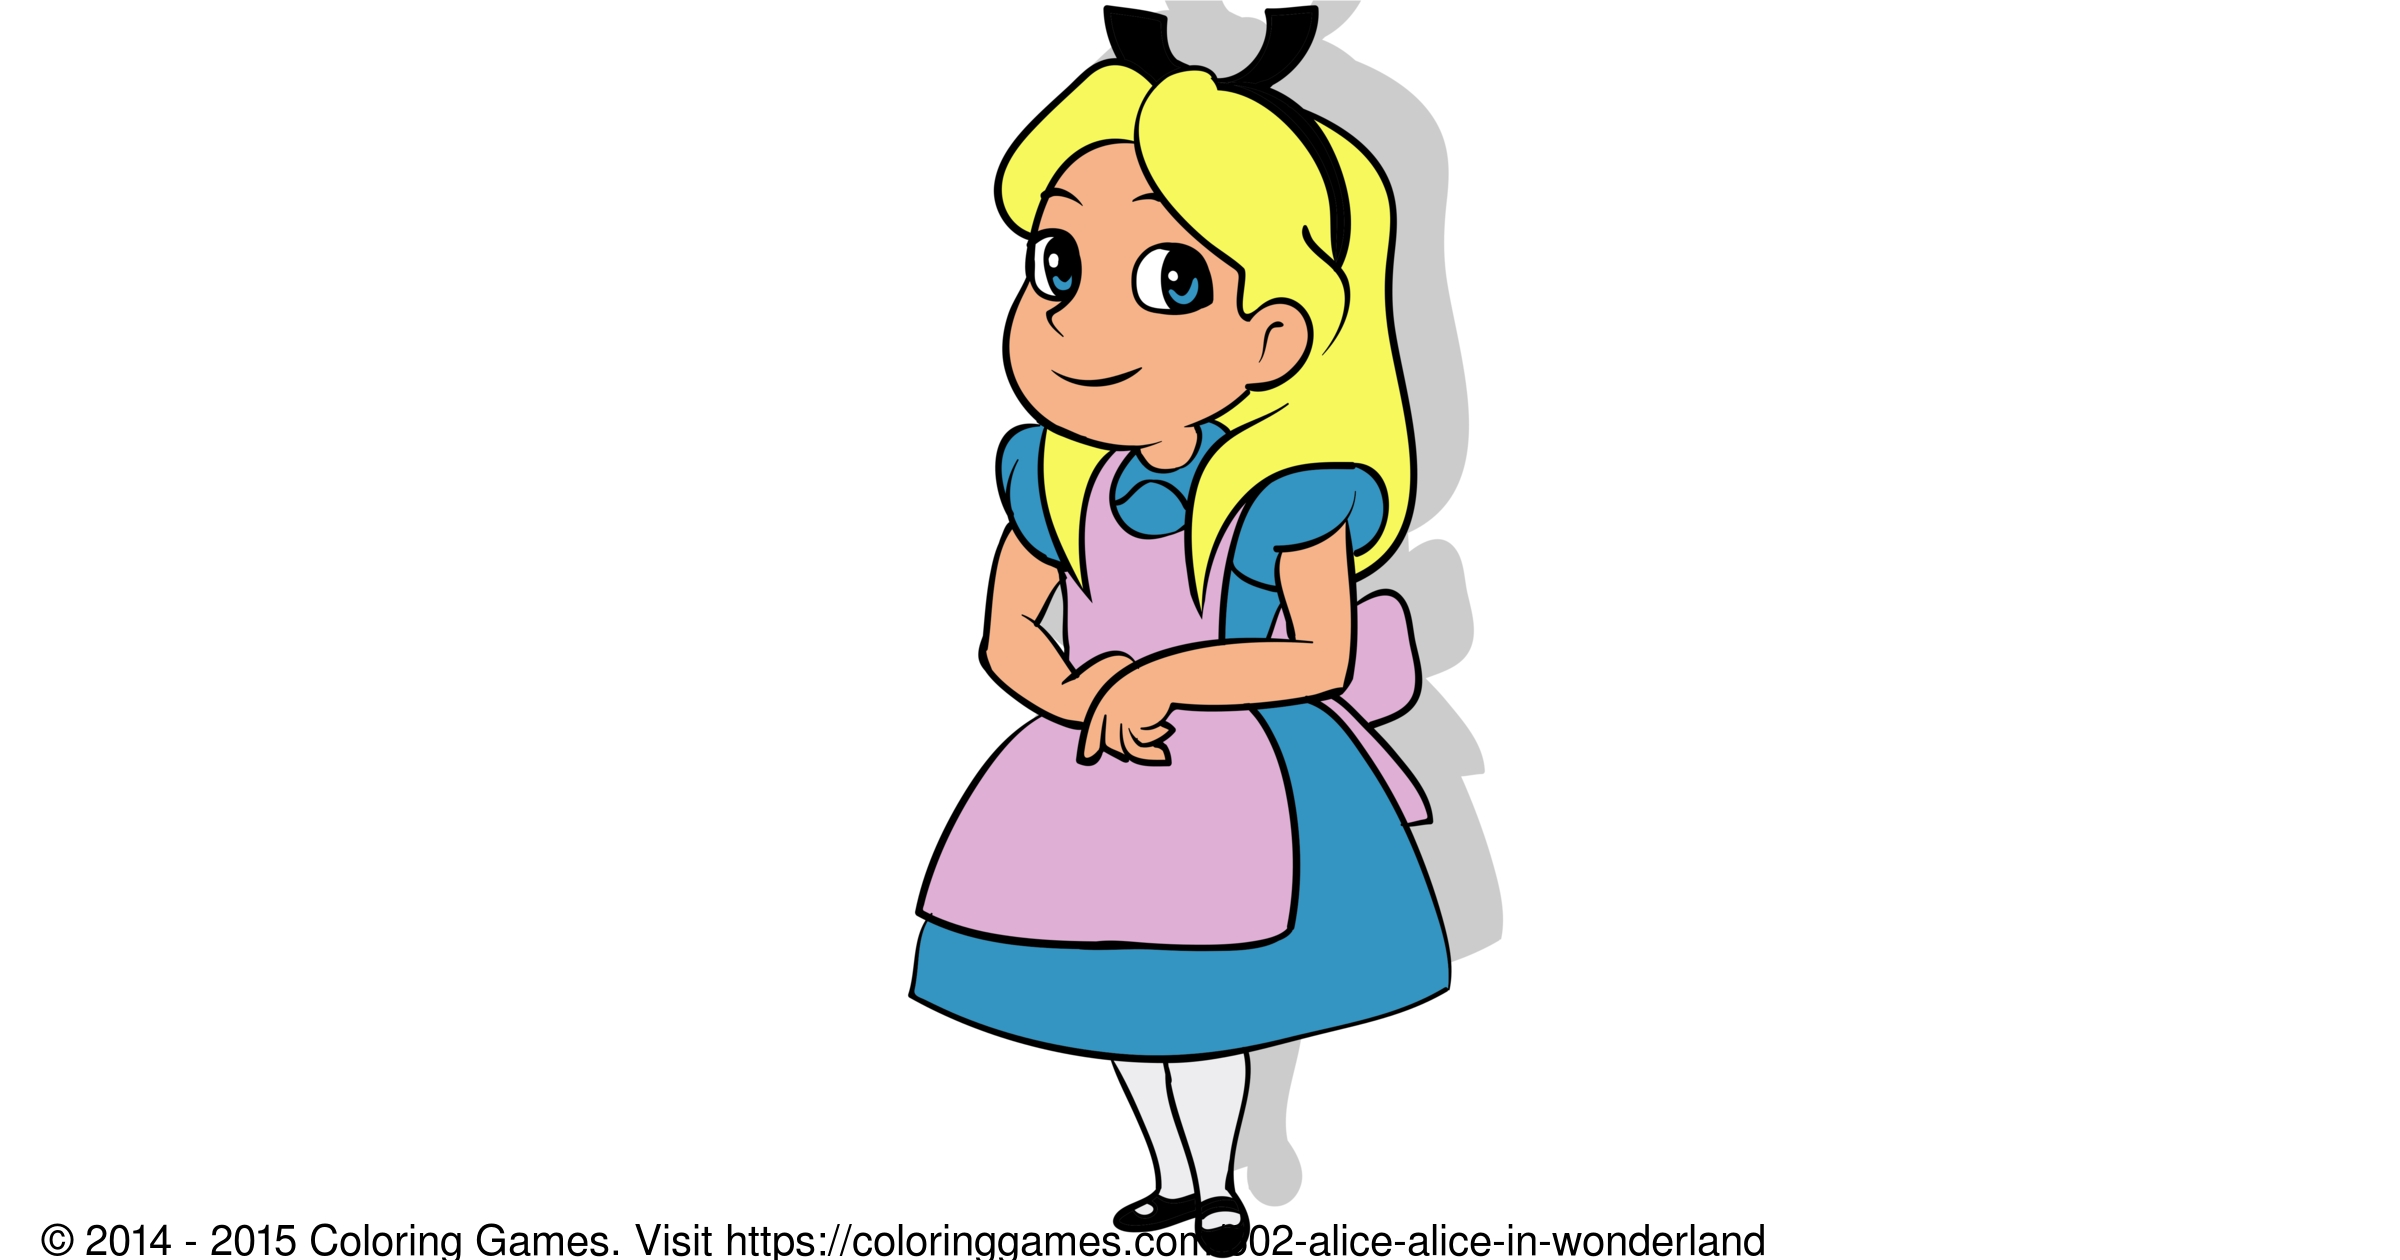 alice in wonderland coloring pages - 602 alice alice in wonderland